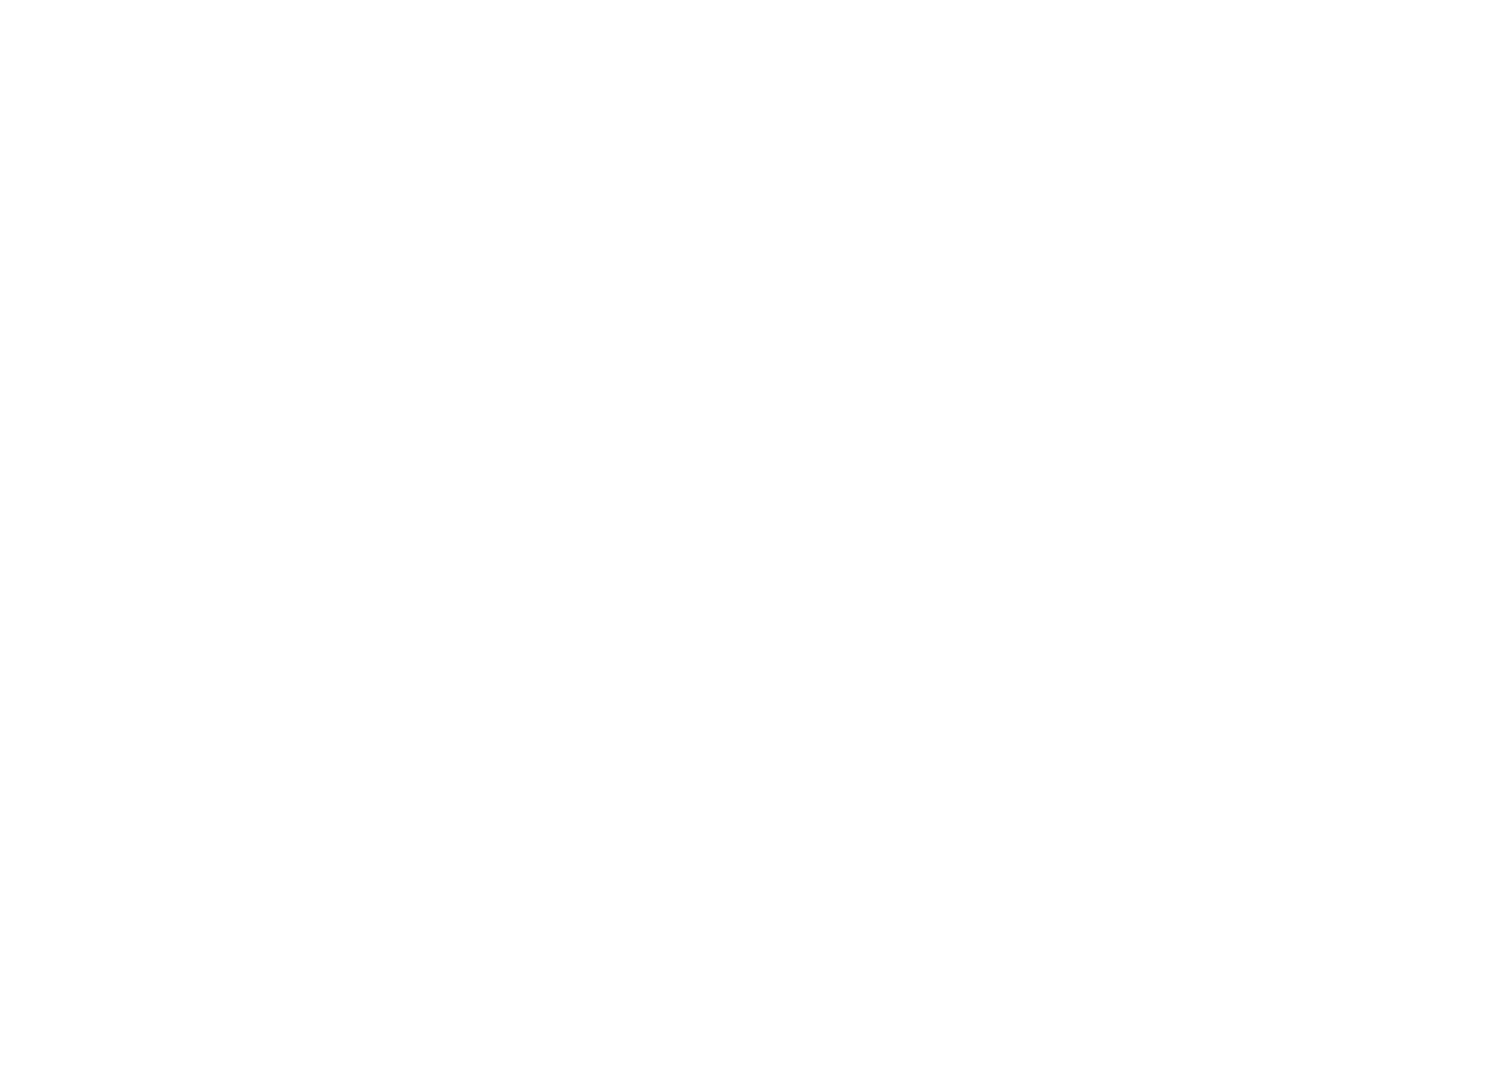 Ellify Talent Agency